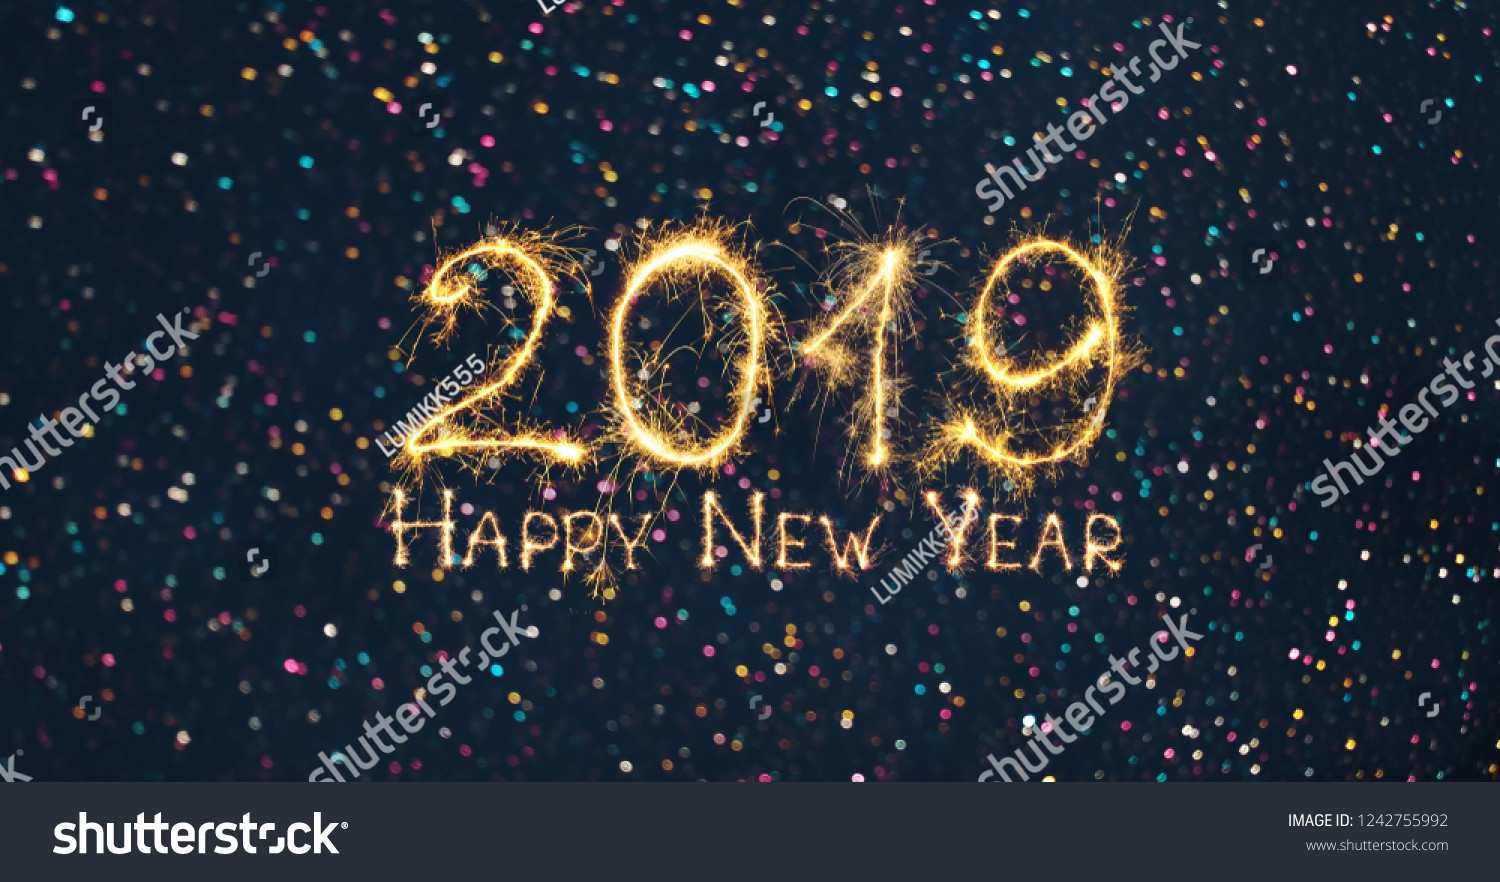 greeting card happy new year 2019 beautiful wide angle holiday web banner or billboard with